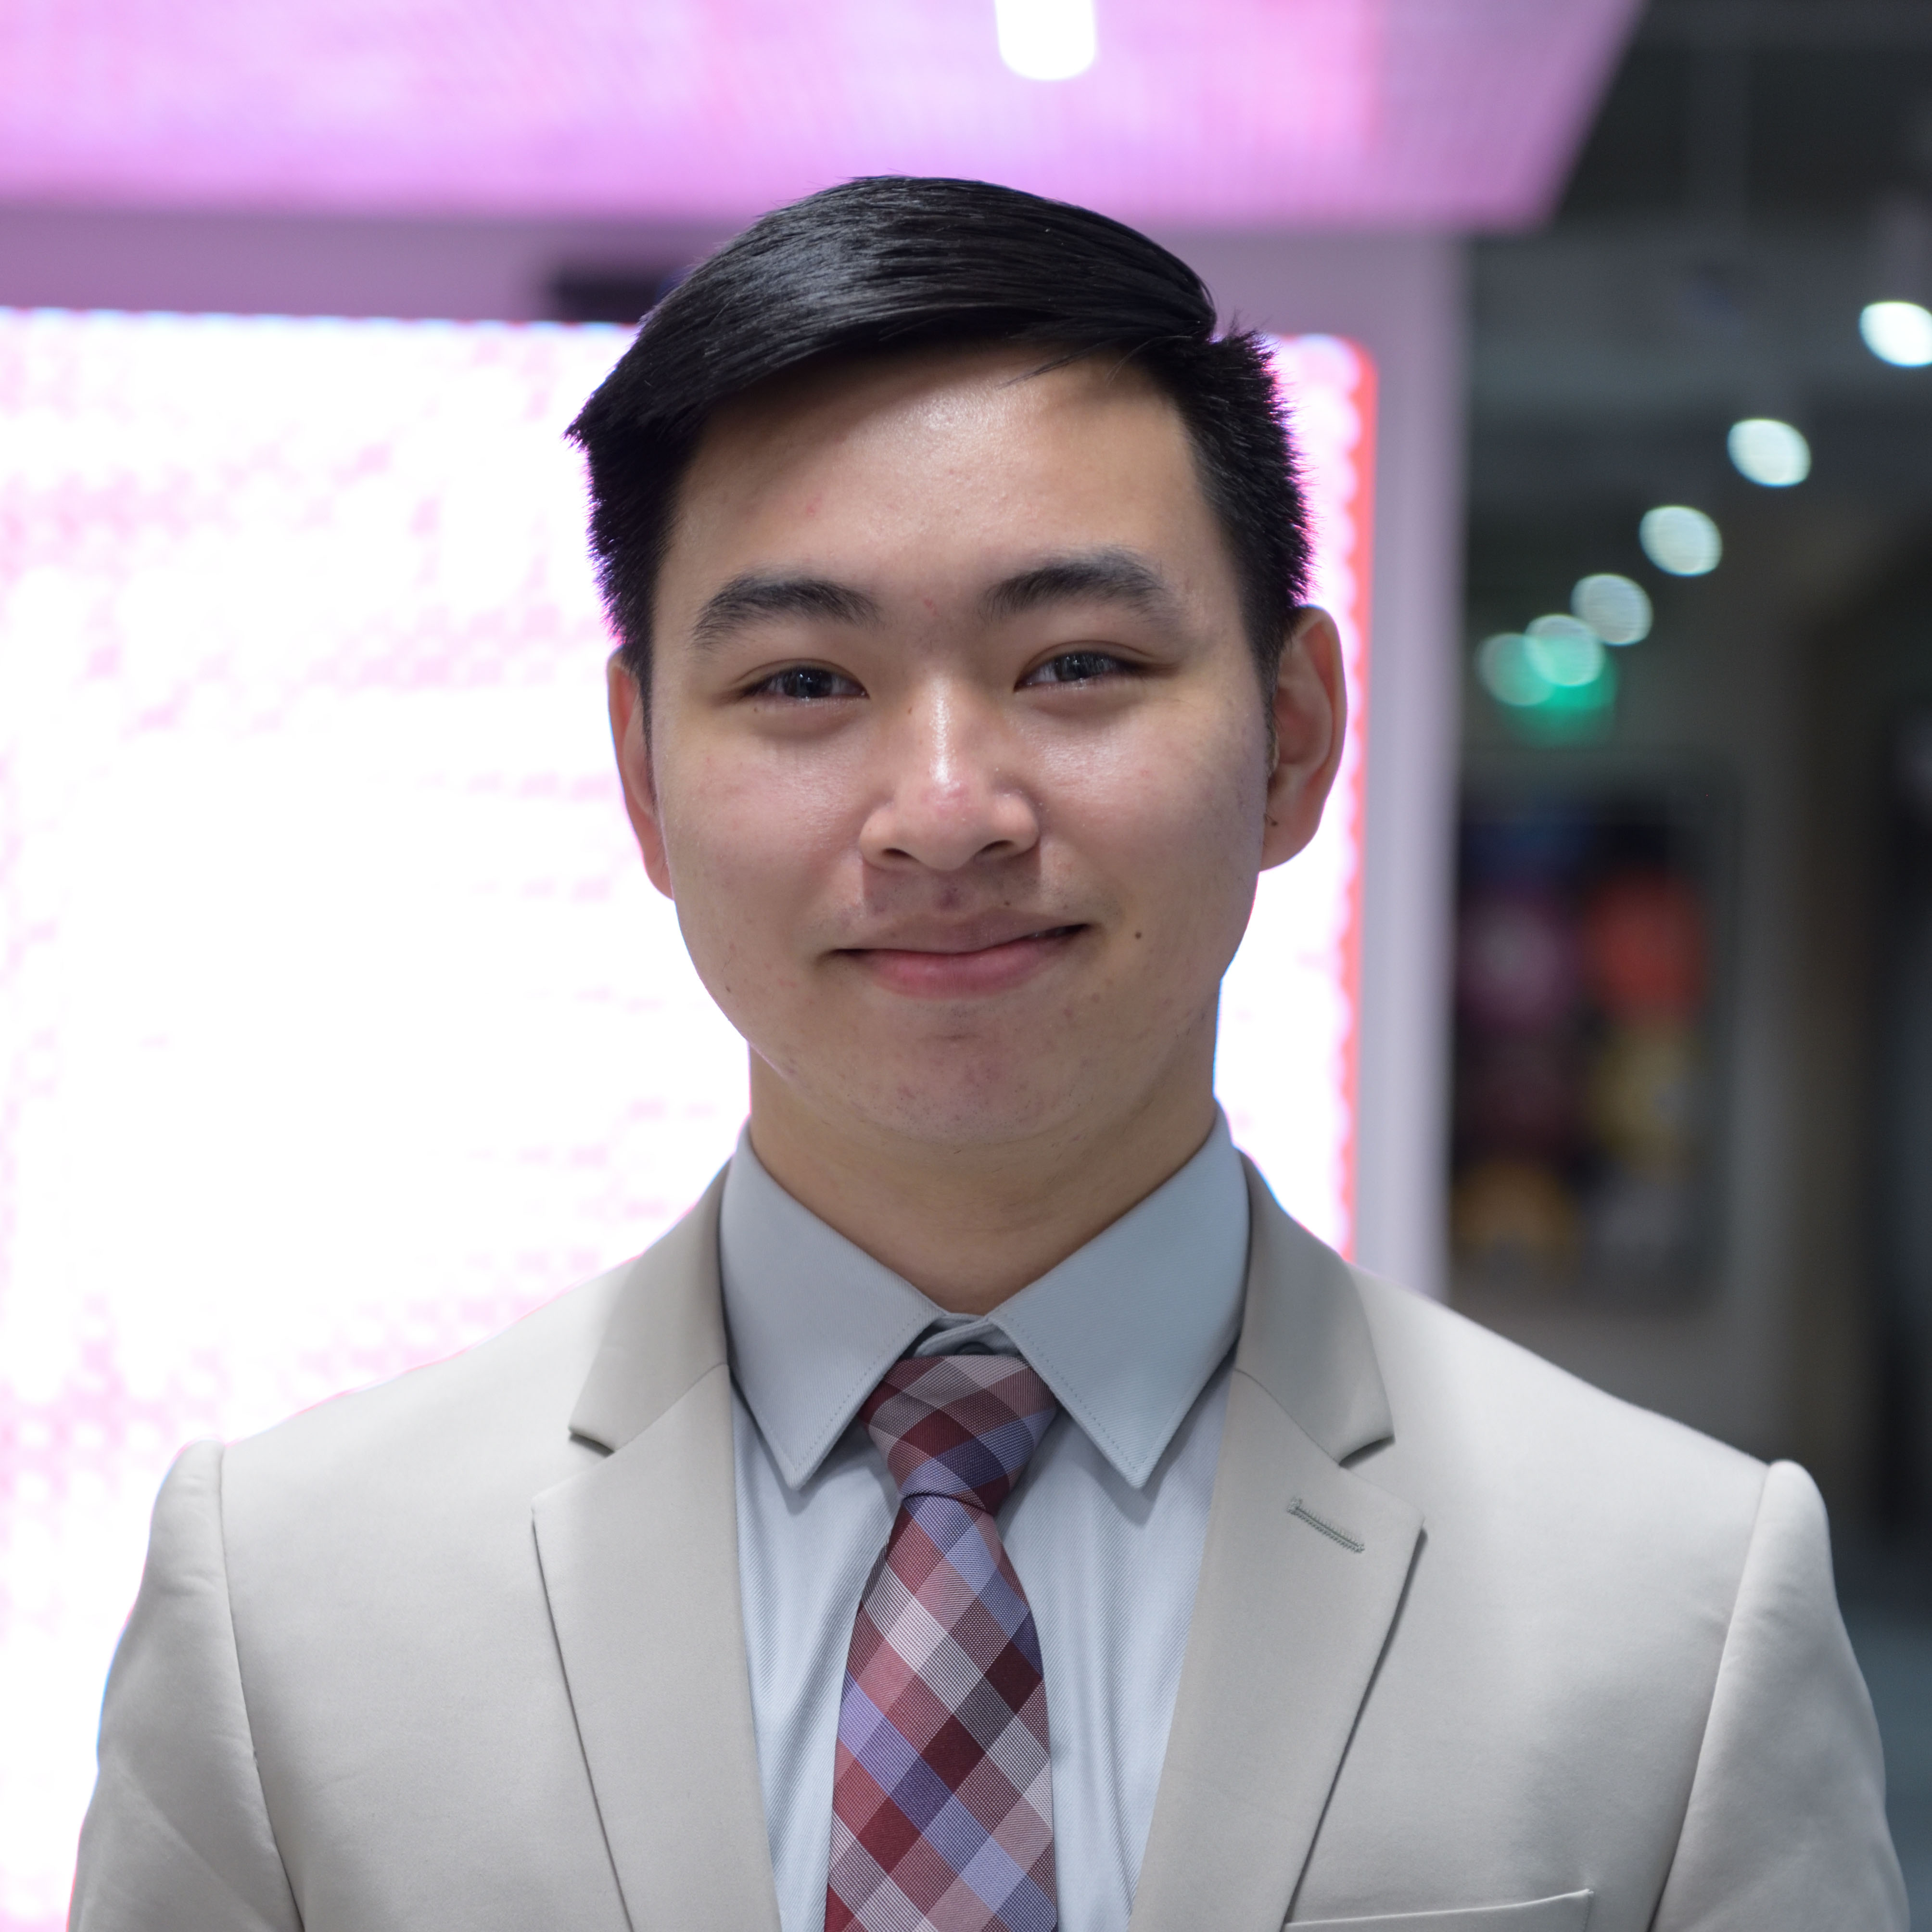 Profile picture of Julian Vu